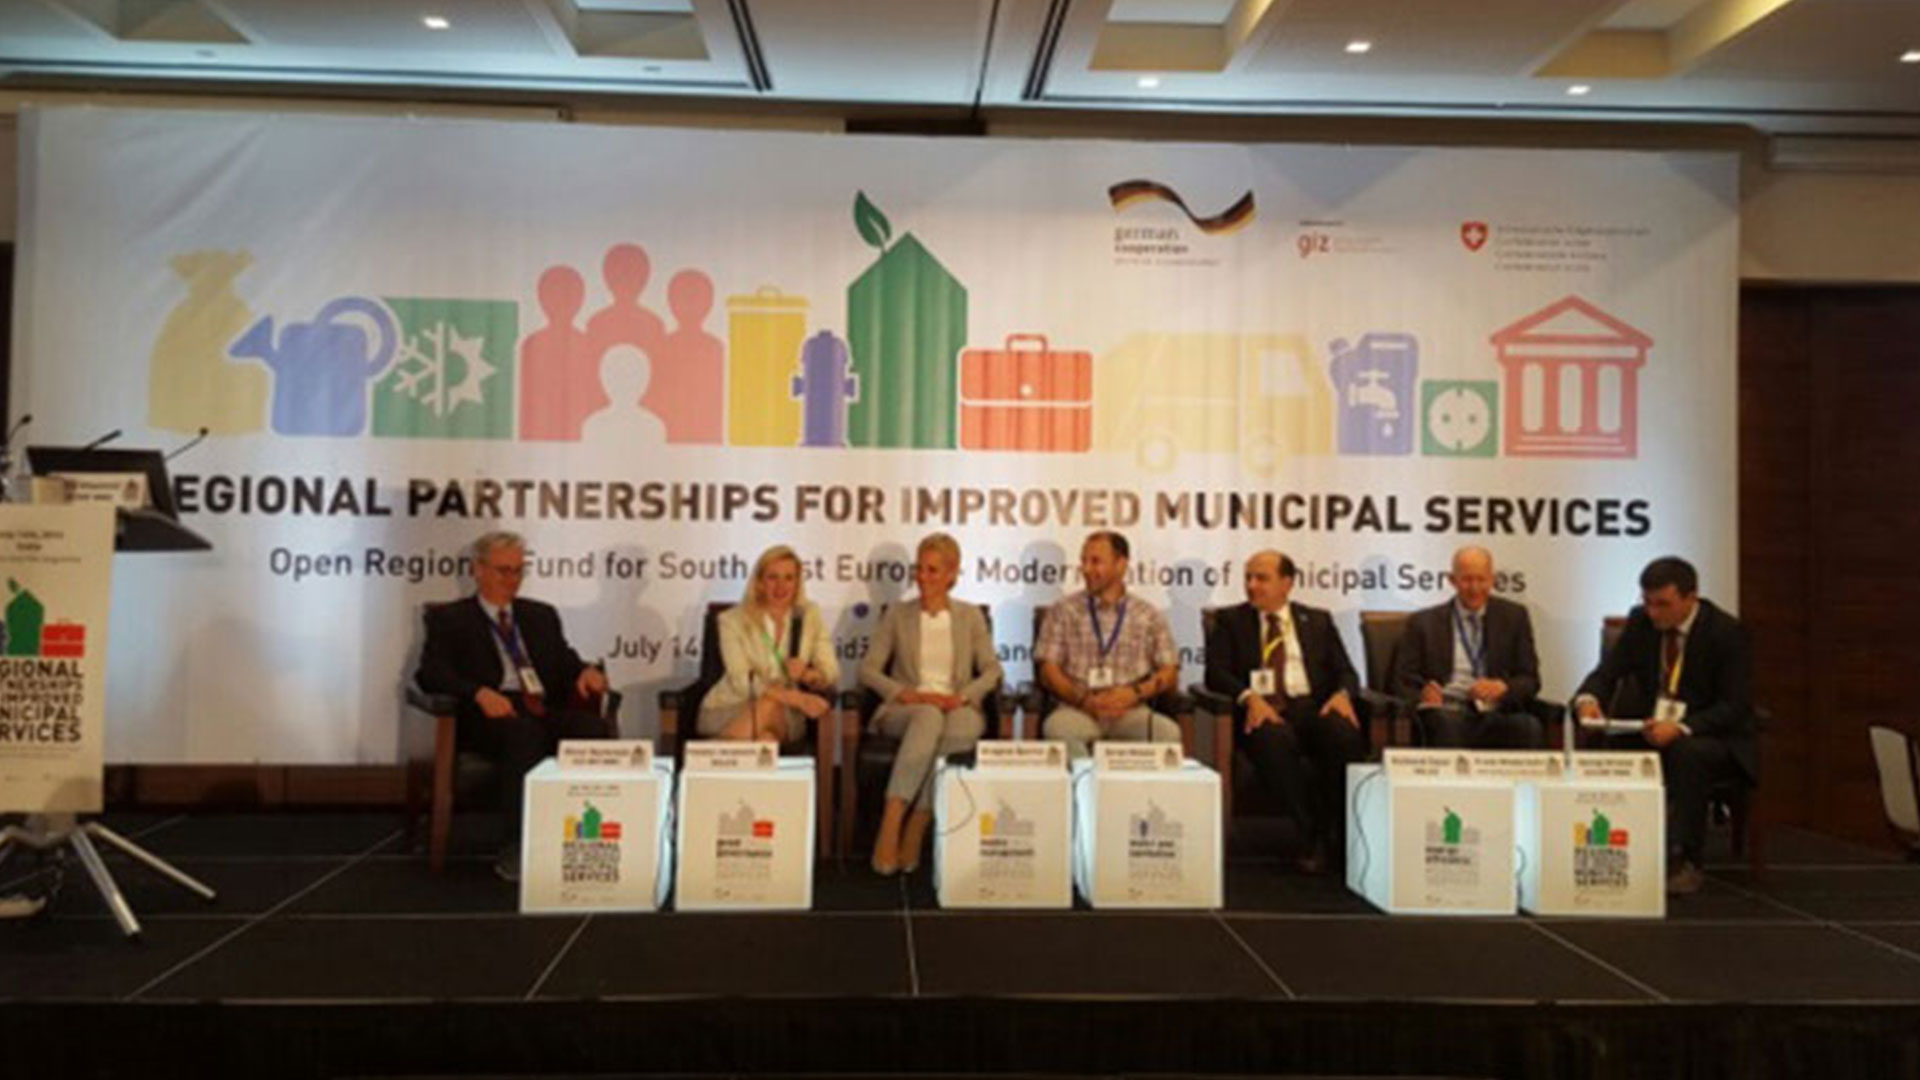 Regional partnerships for improved municipal services